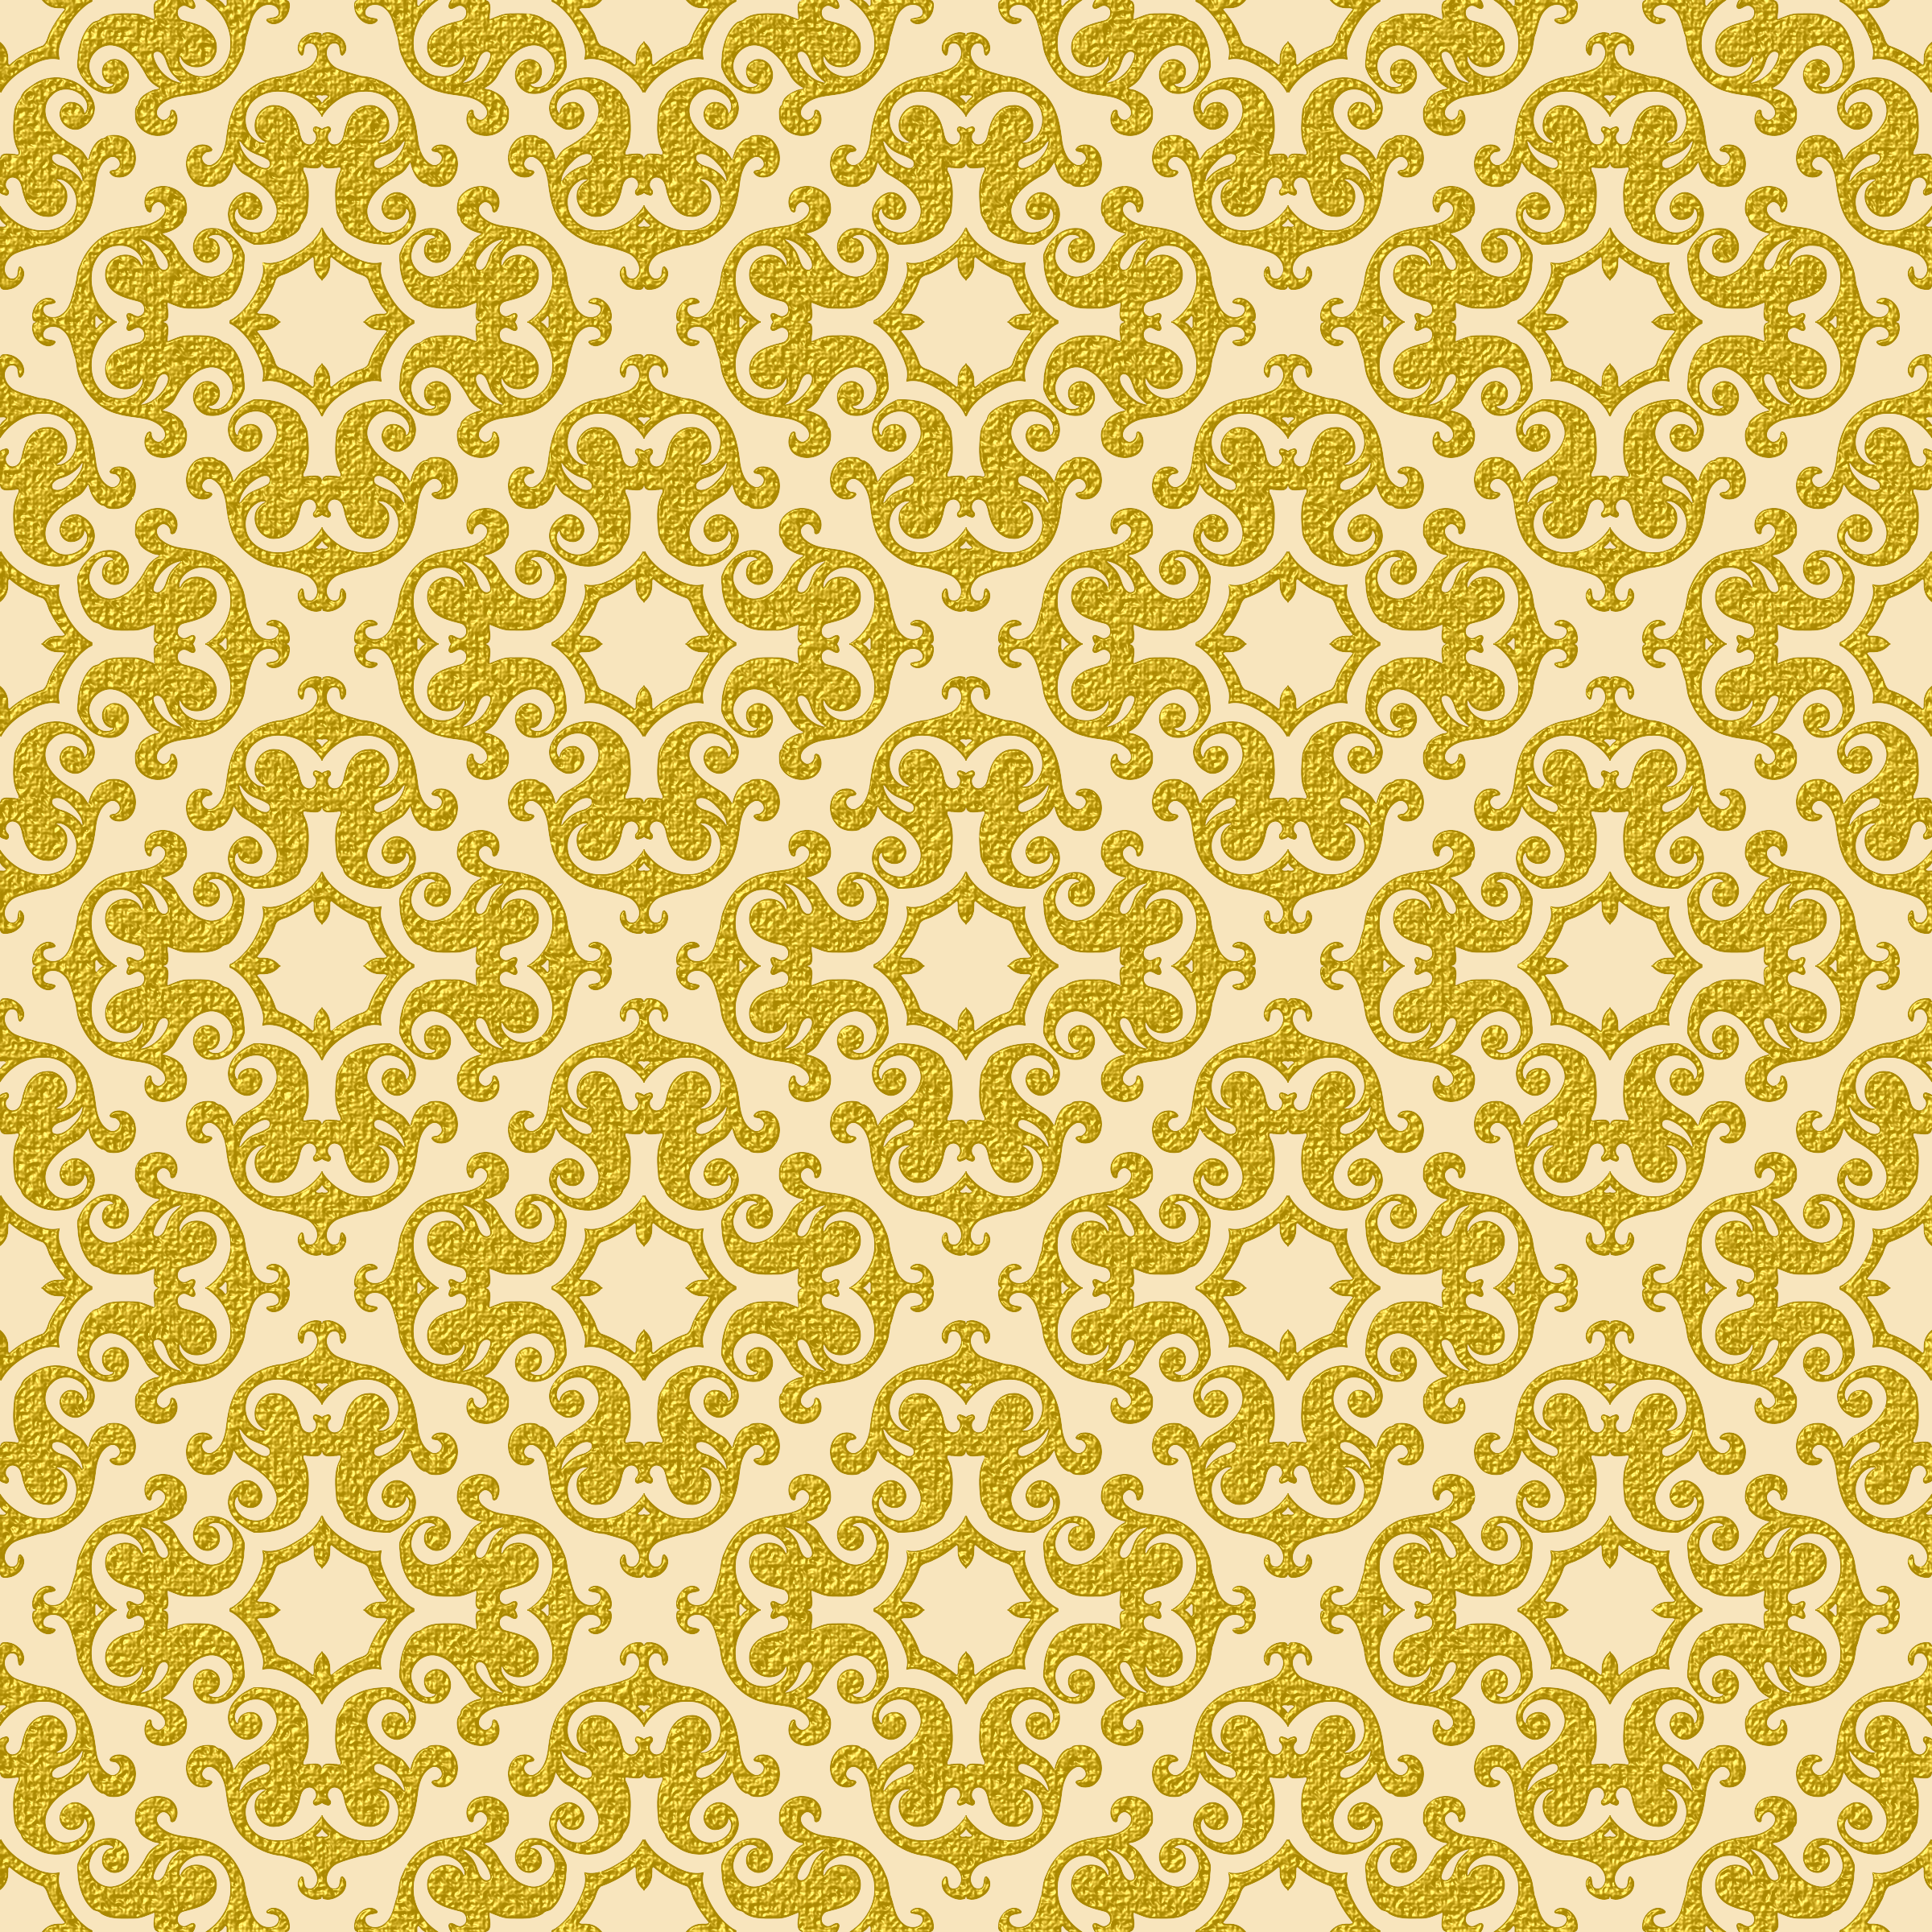 Background pattern 126 (colour) by Firkin